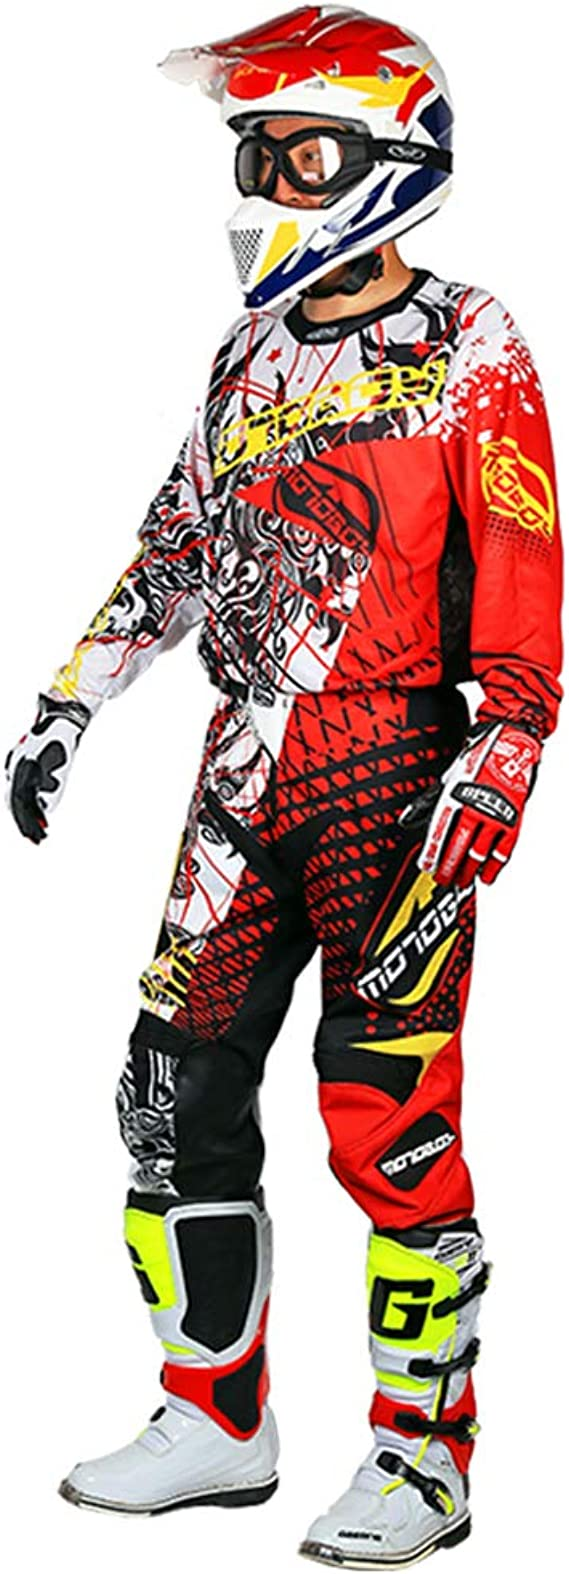 MOTO-BOY Motorcycle Off-Road Racing Suits,2019 Breathable Mesh Leather Jersey and Pants for Men